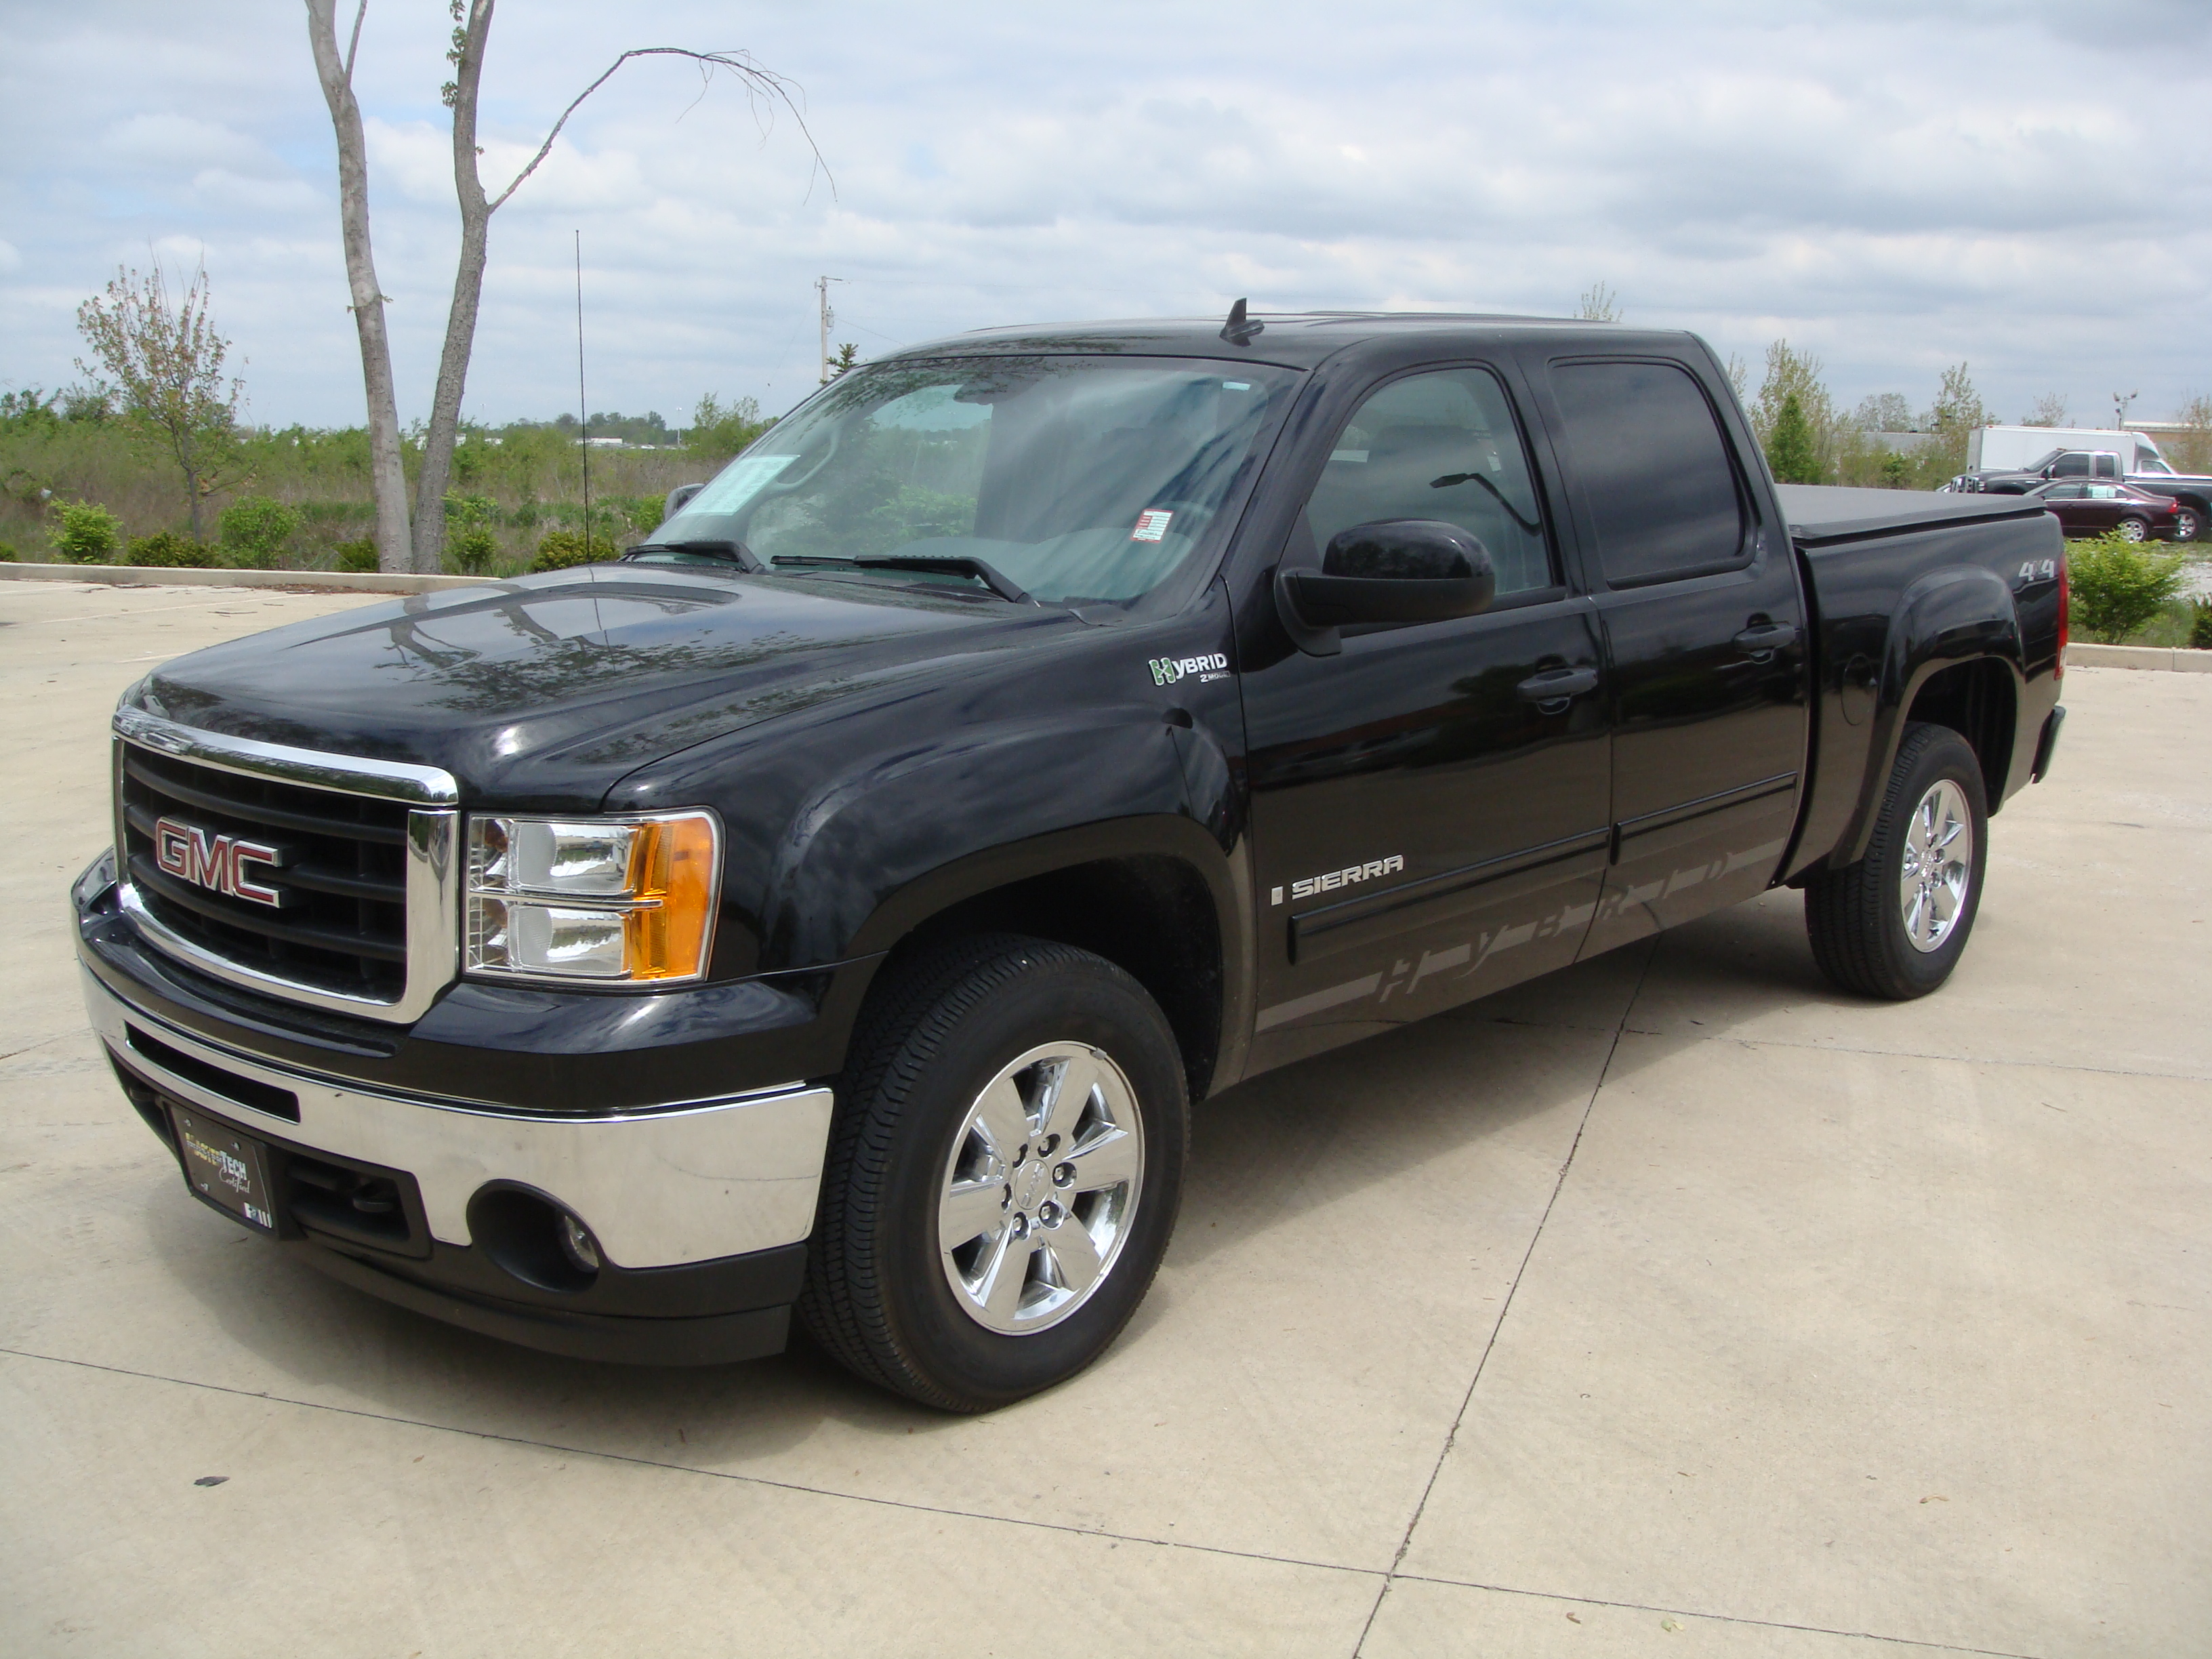 2009 GMC Sierra Hybrid Crew Cab photo - 2